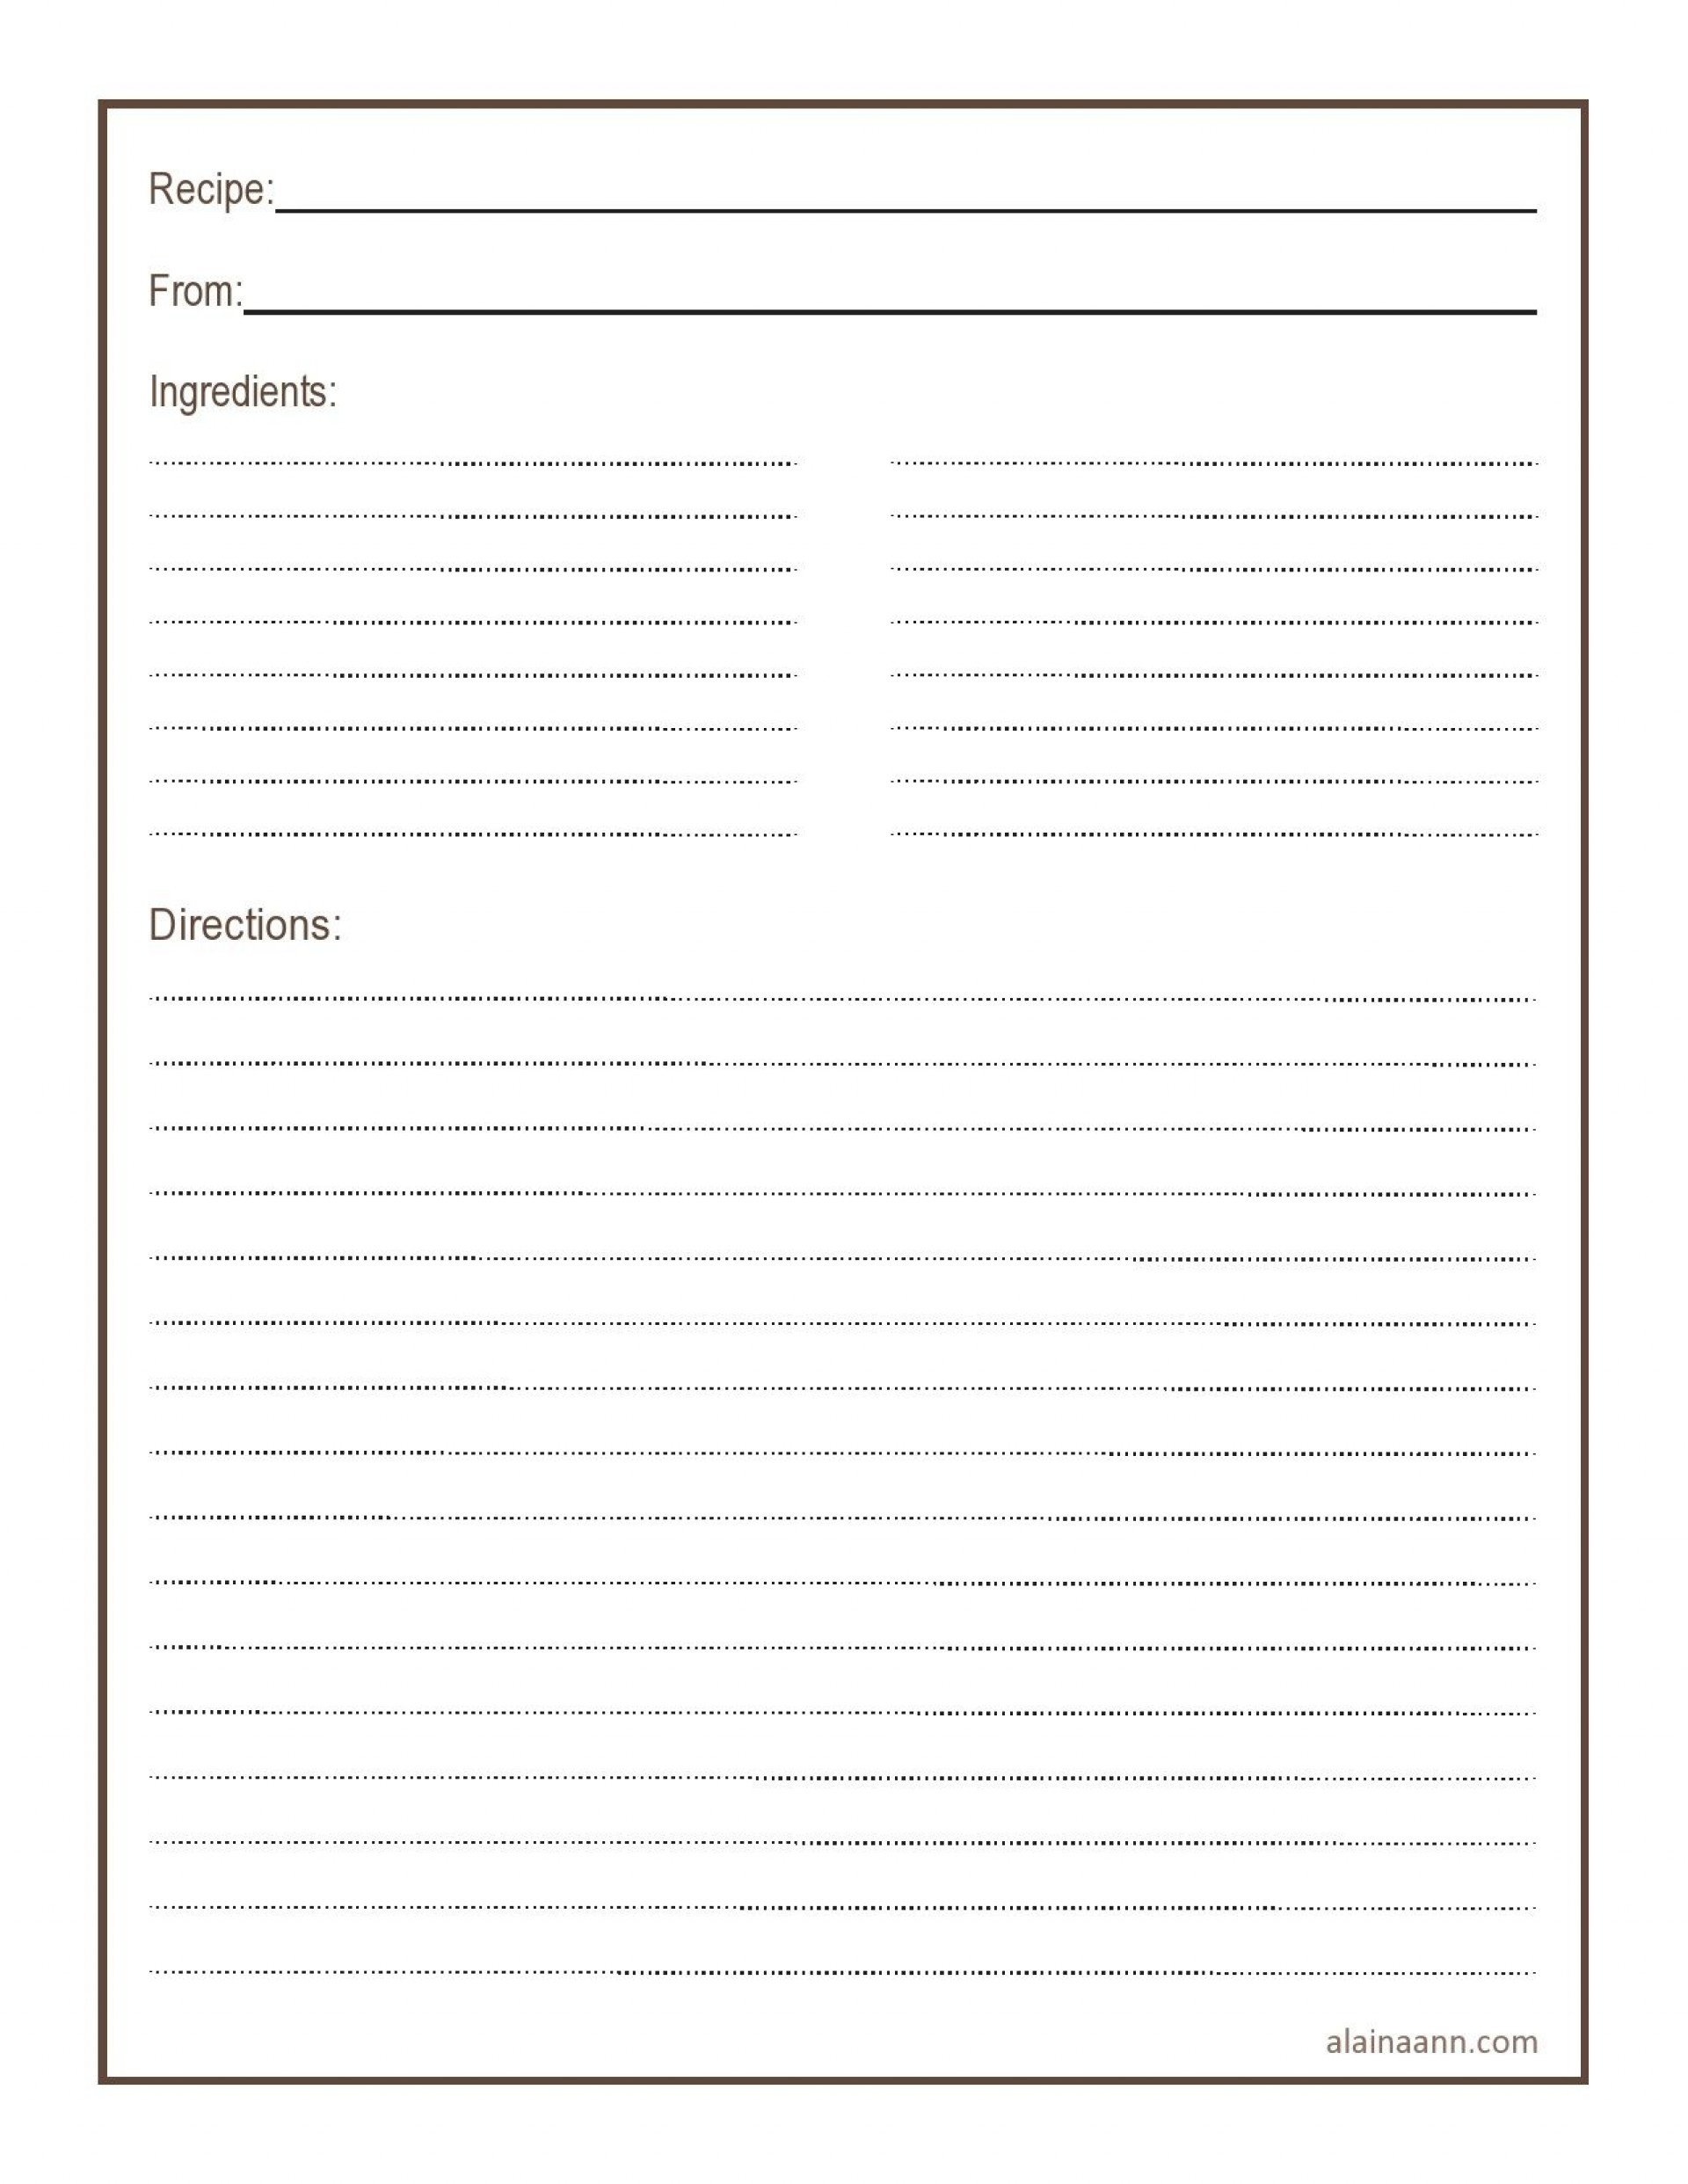 009 Wonderful Recipe Card Template For Word Example  Printable Blank Fillable1920